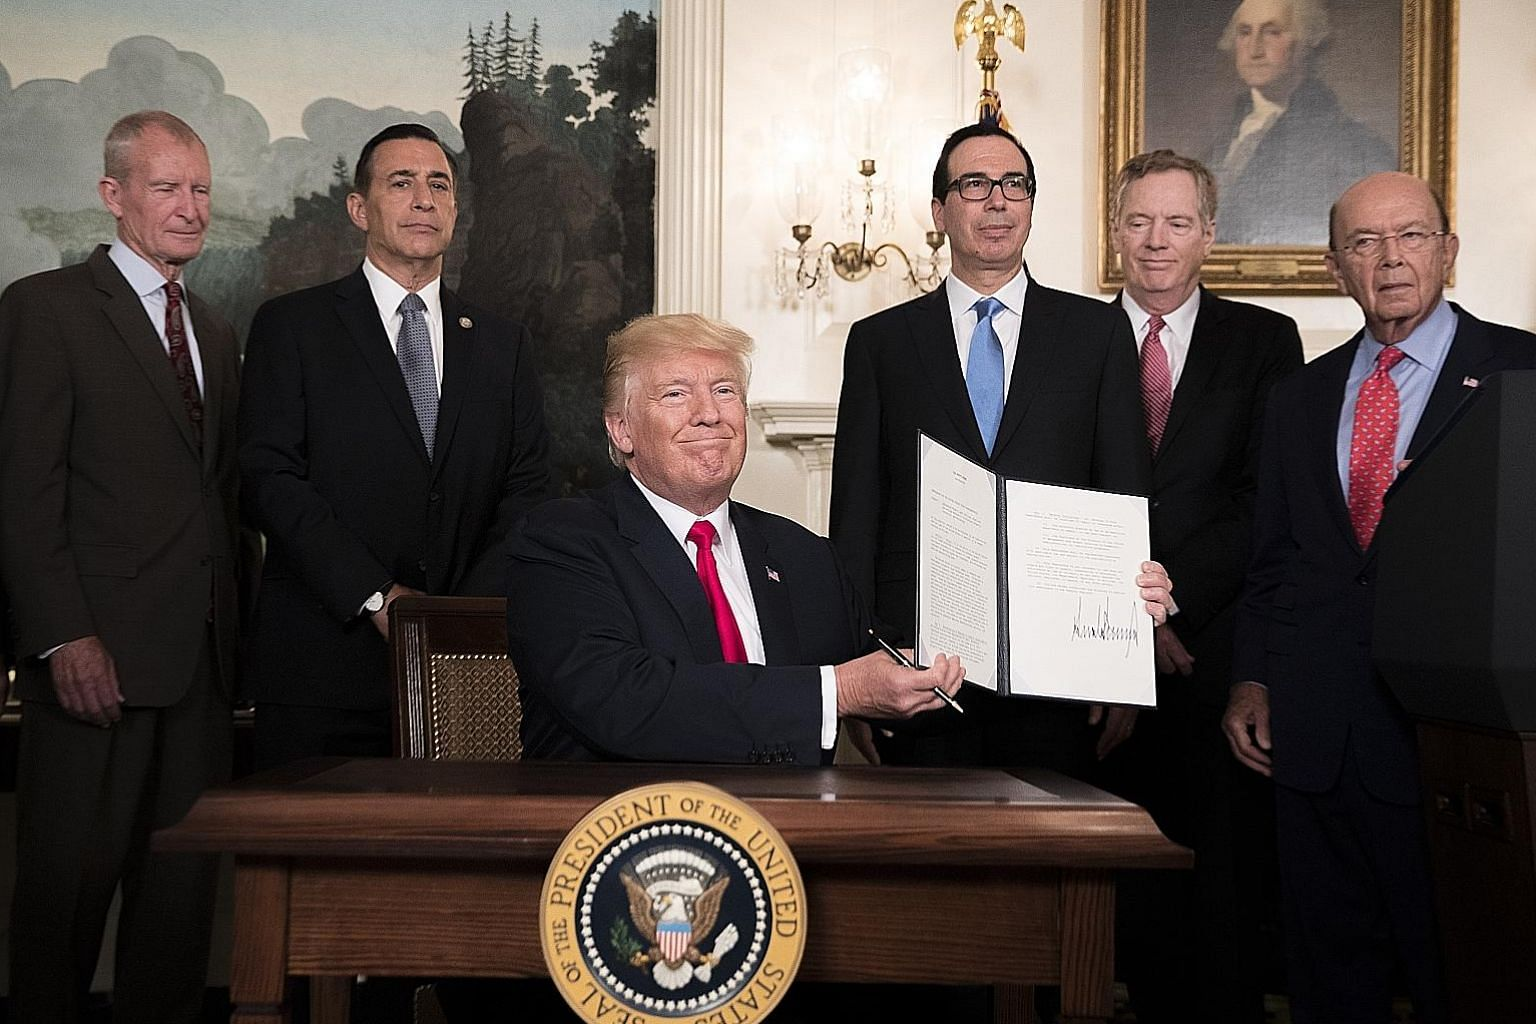 US President Donald Trump in the Diplomatic Reception Room of the White House on Monday with a signed memorandum calling for a trade investigation of China. With him are his inner circle who deal with trade issues, including Commerce Secretary Wilbur